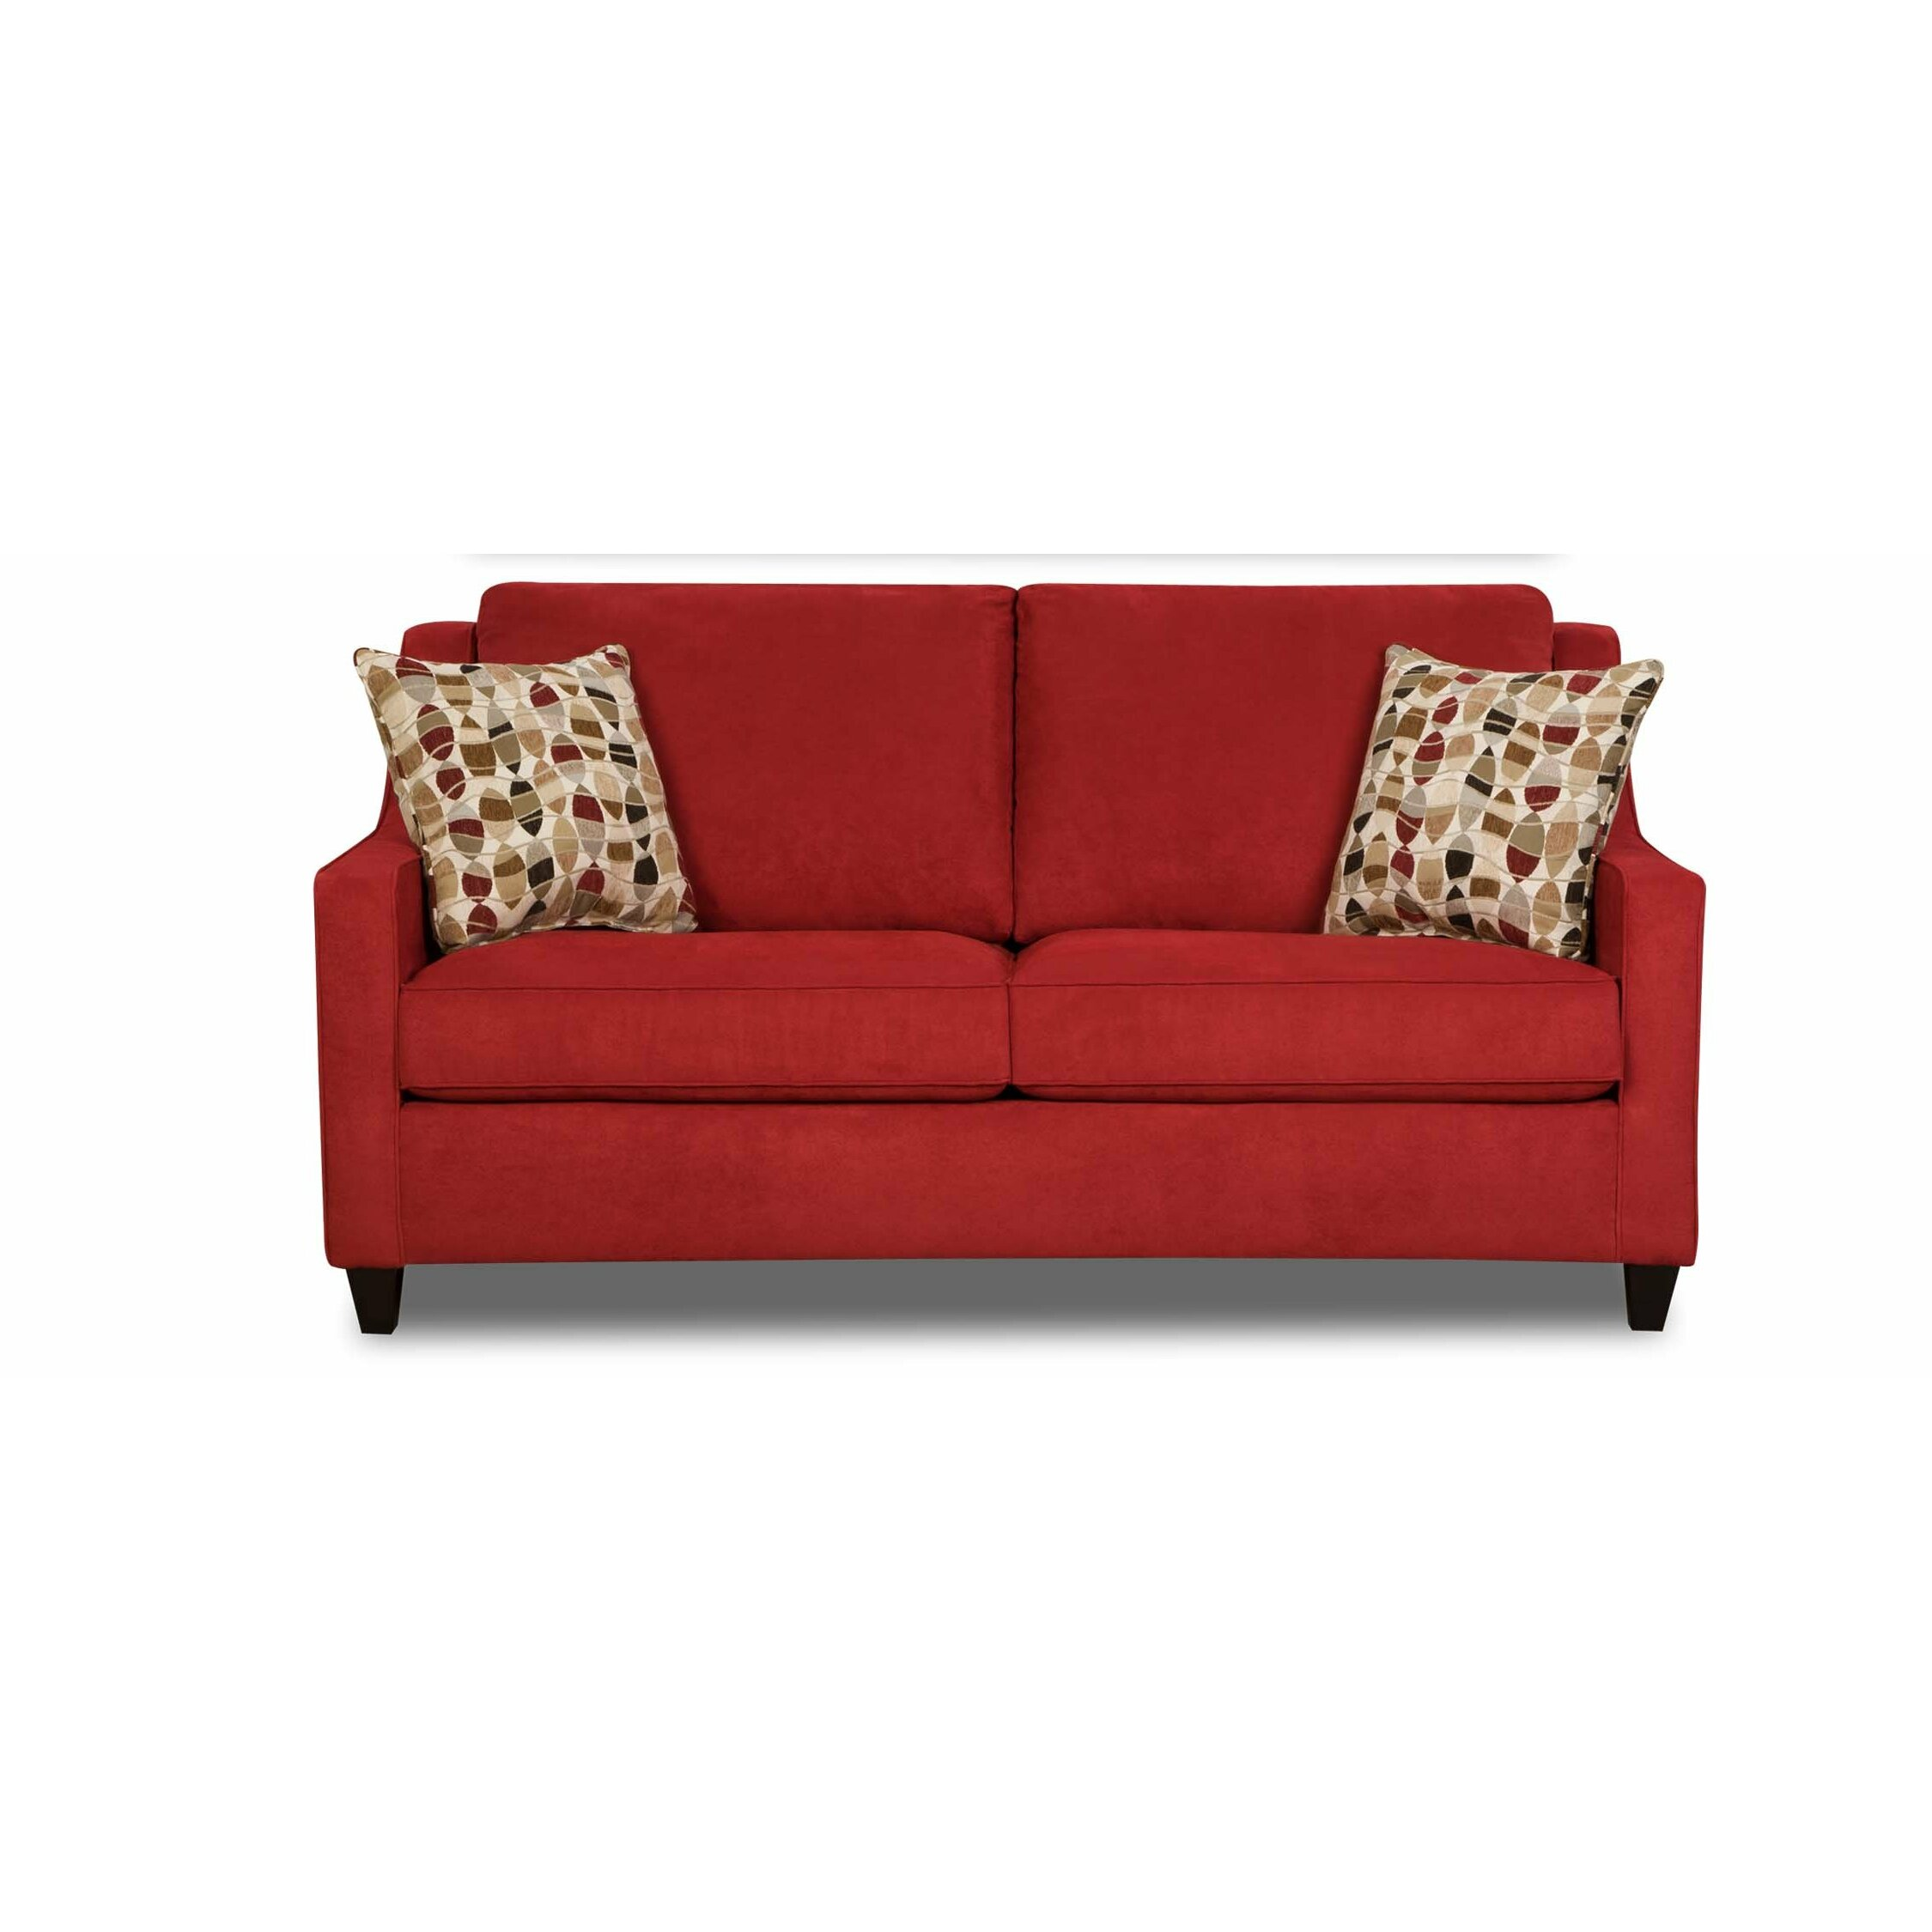 Simmons upholstery twillo full sleeper sofa reviews for Wayfair furniture sectional sofa